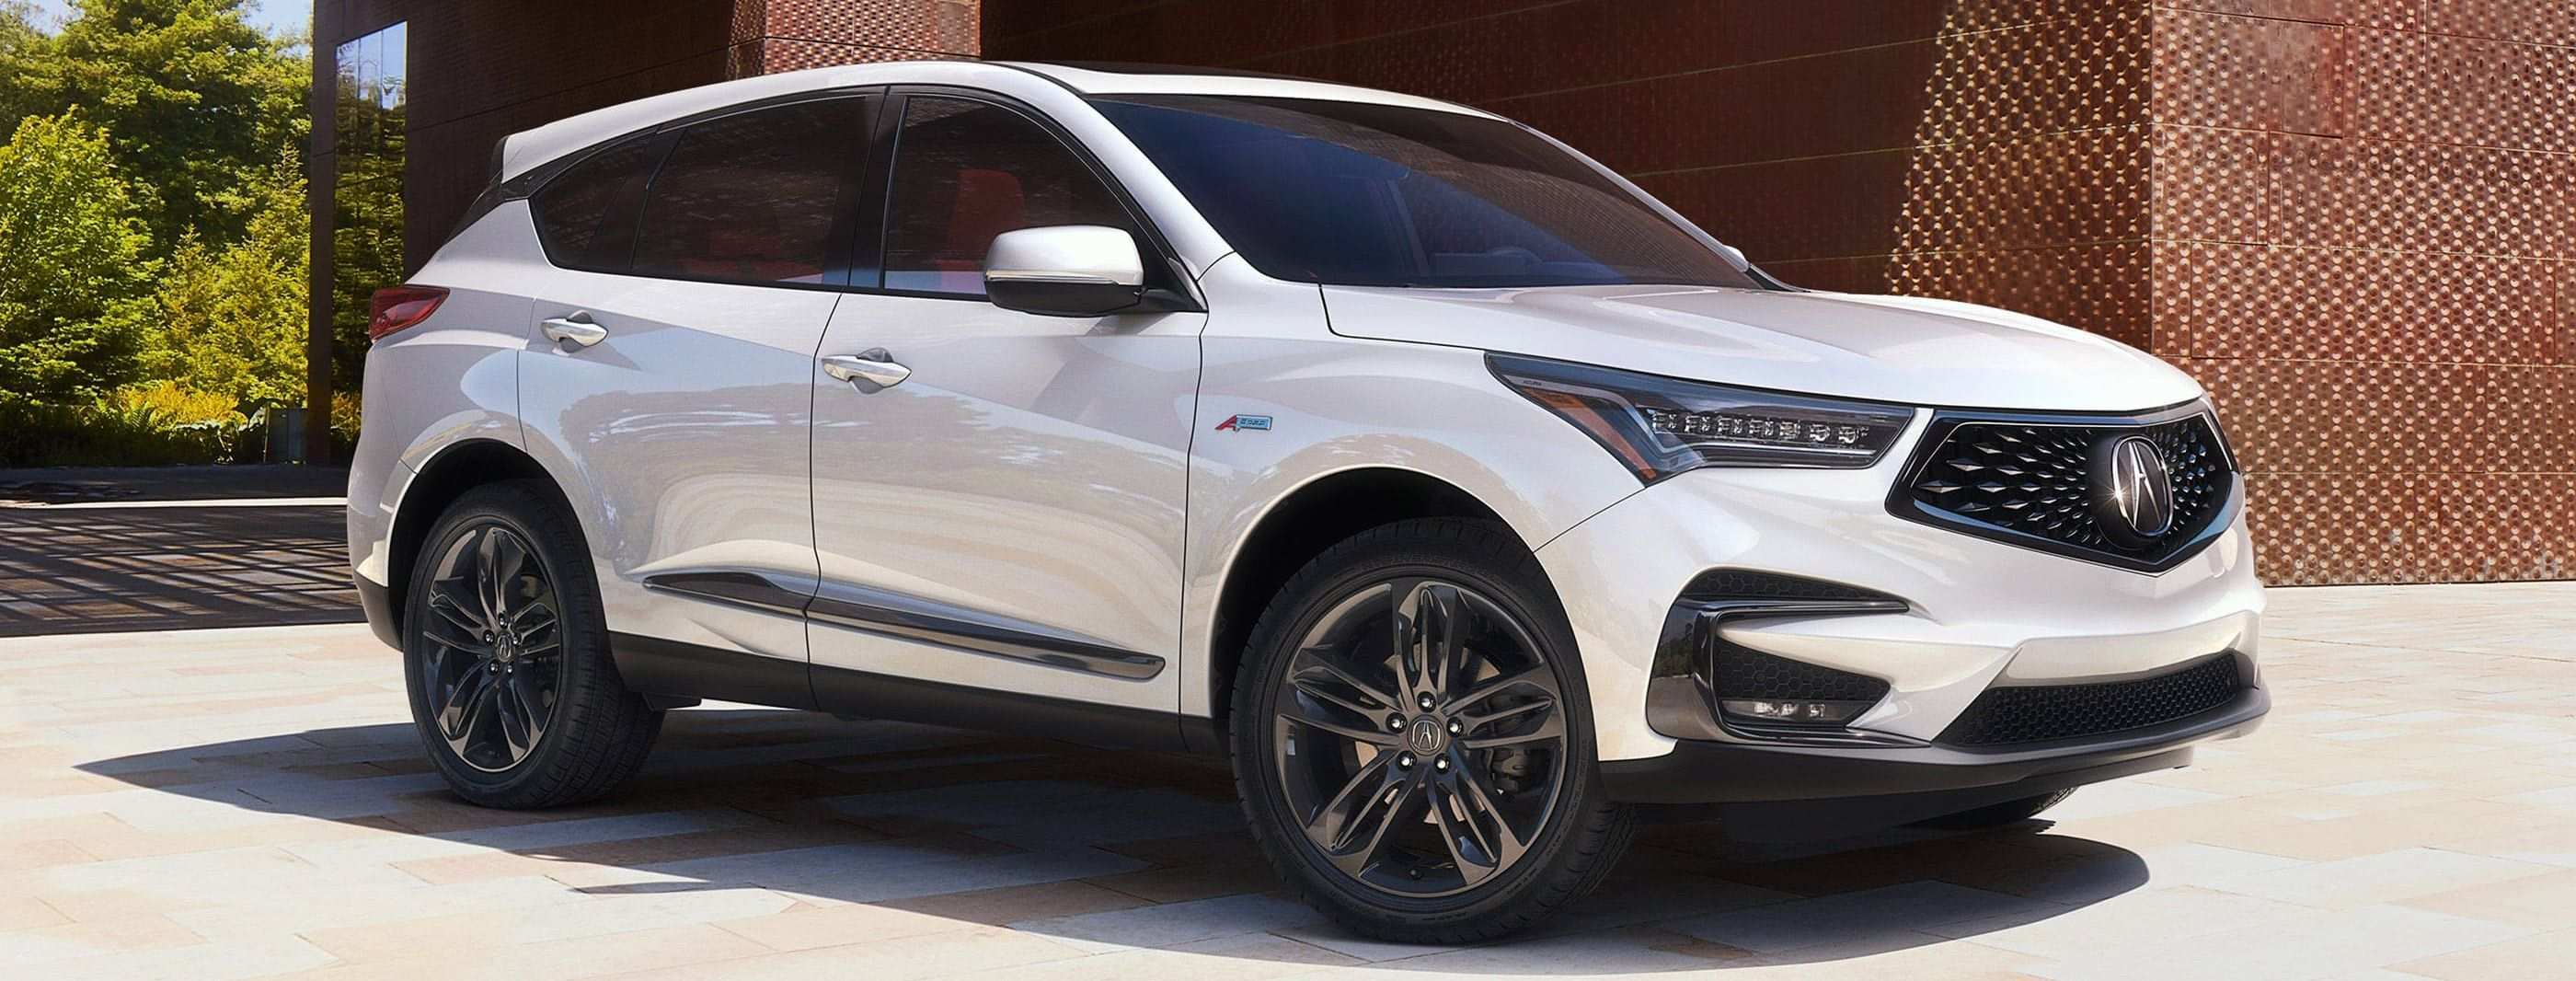 71 Concept of 2020 Acura Rdx For Sale First Drive by 2020 Acura Rdx For Sale